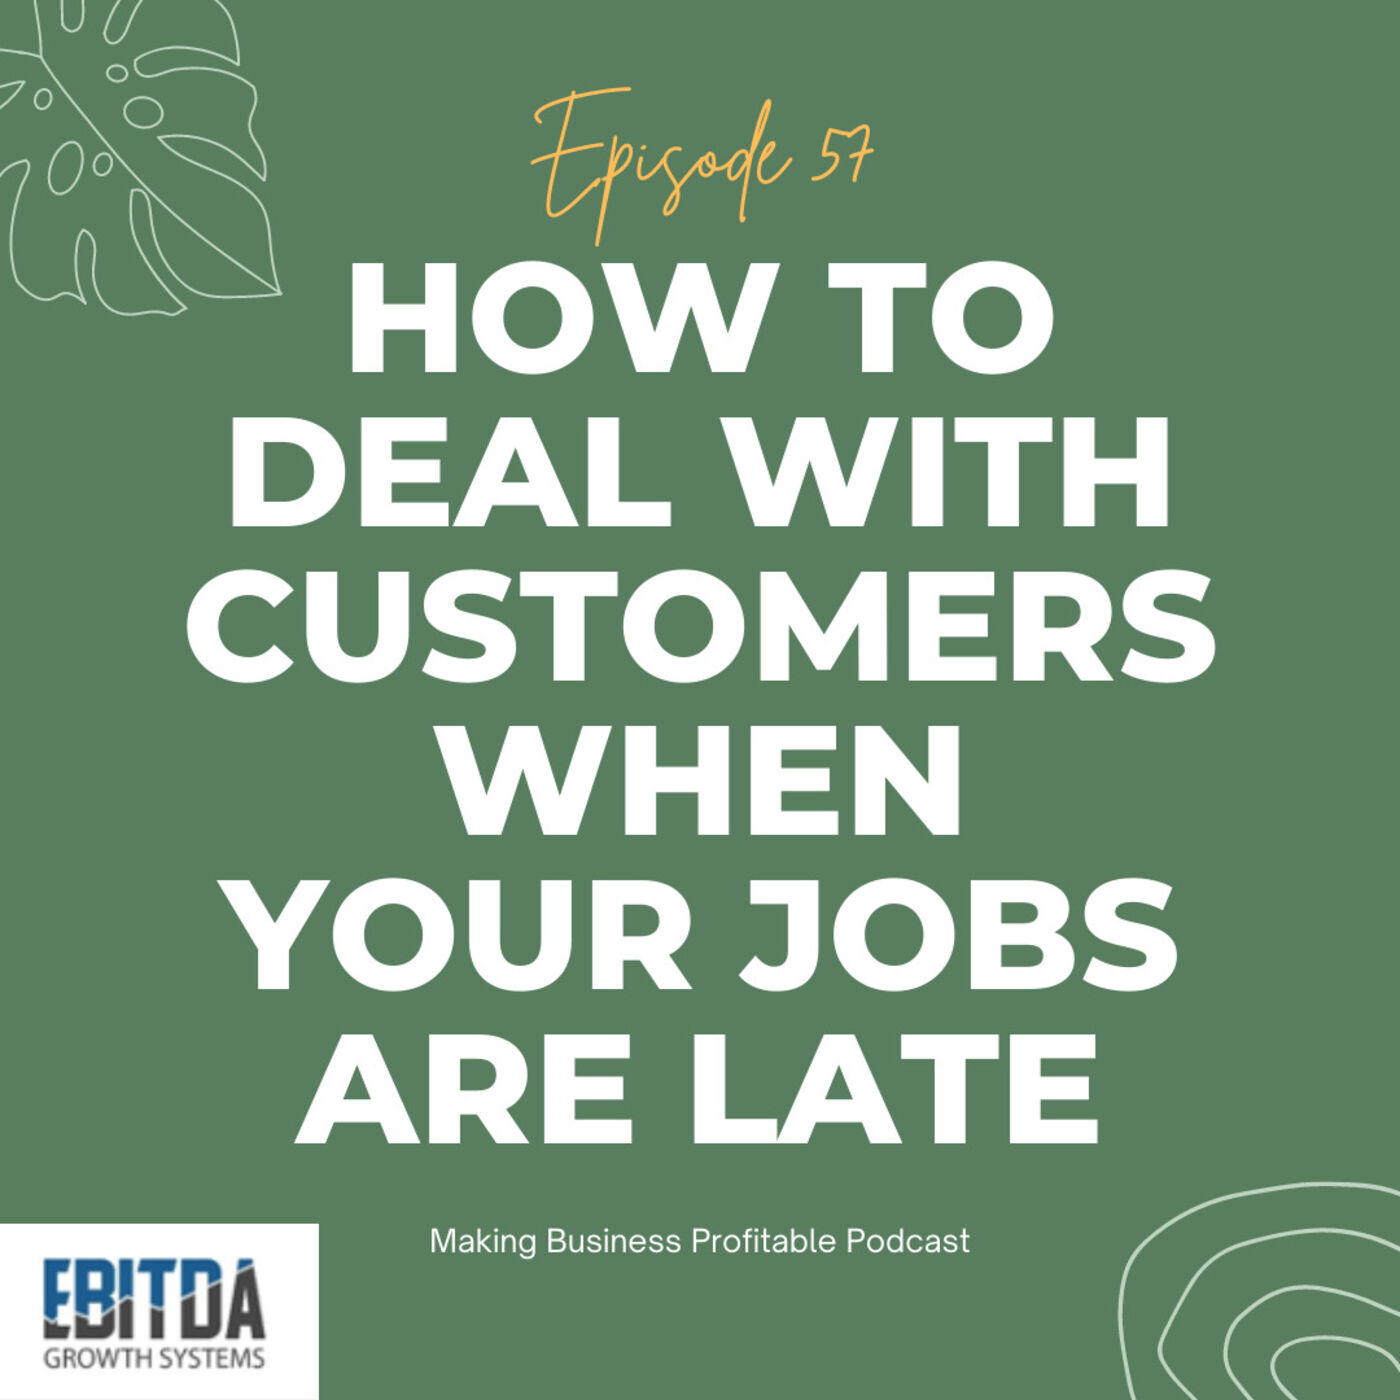 Episode 57 - How to Deal with Customers when your jobs are Late